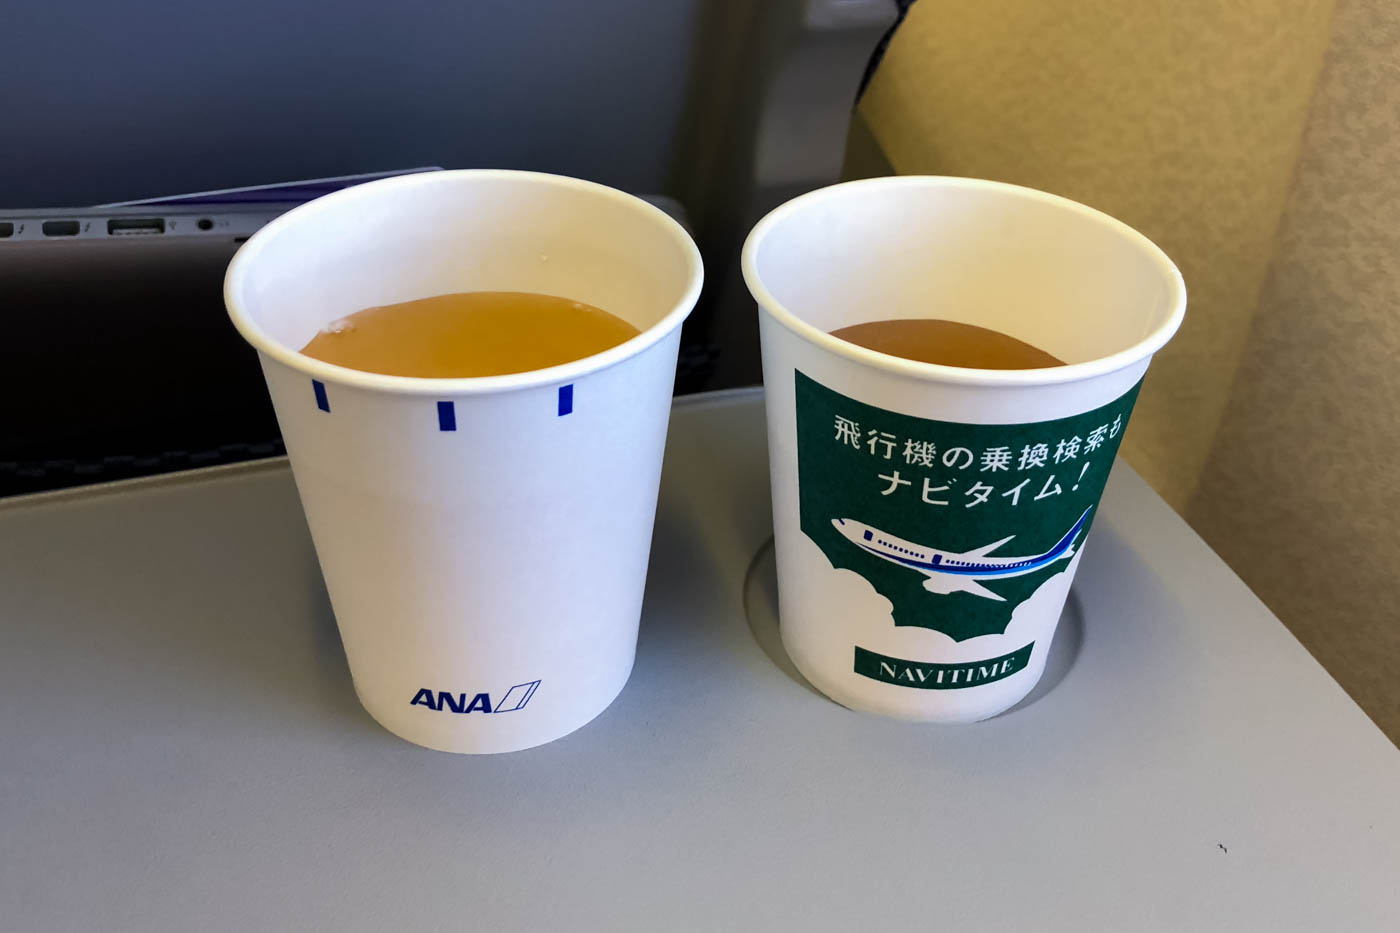 ANA In-Flight Service on Domestic Flights